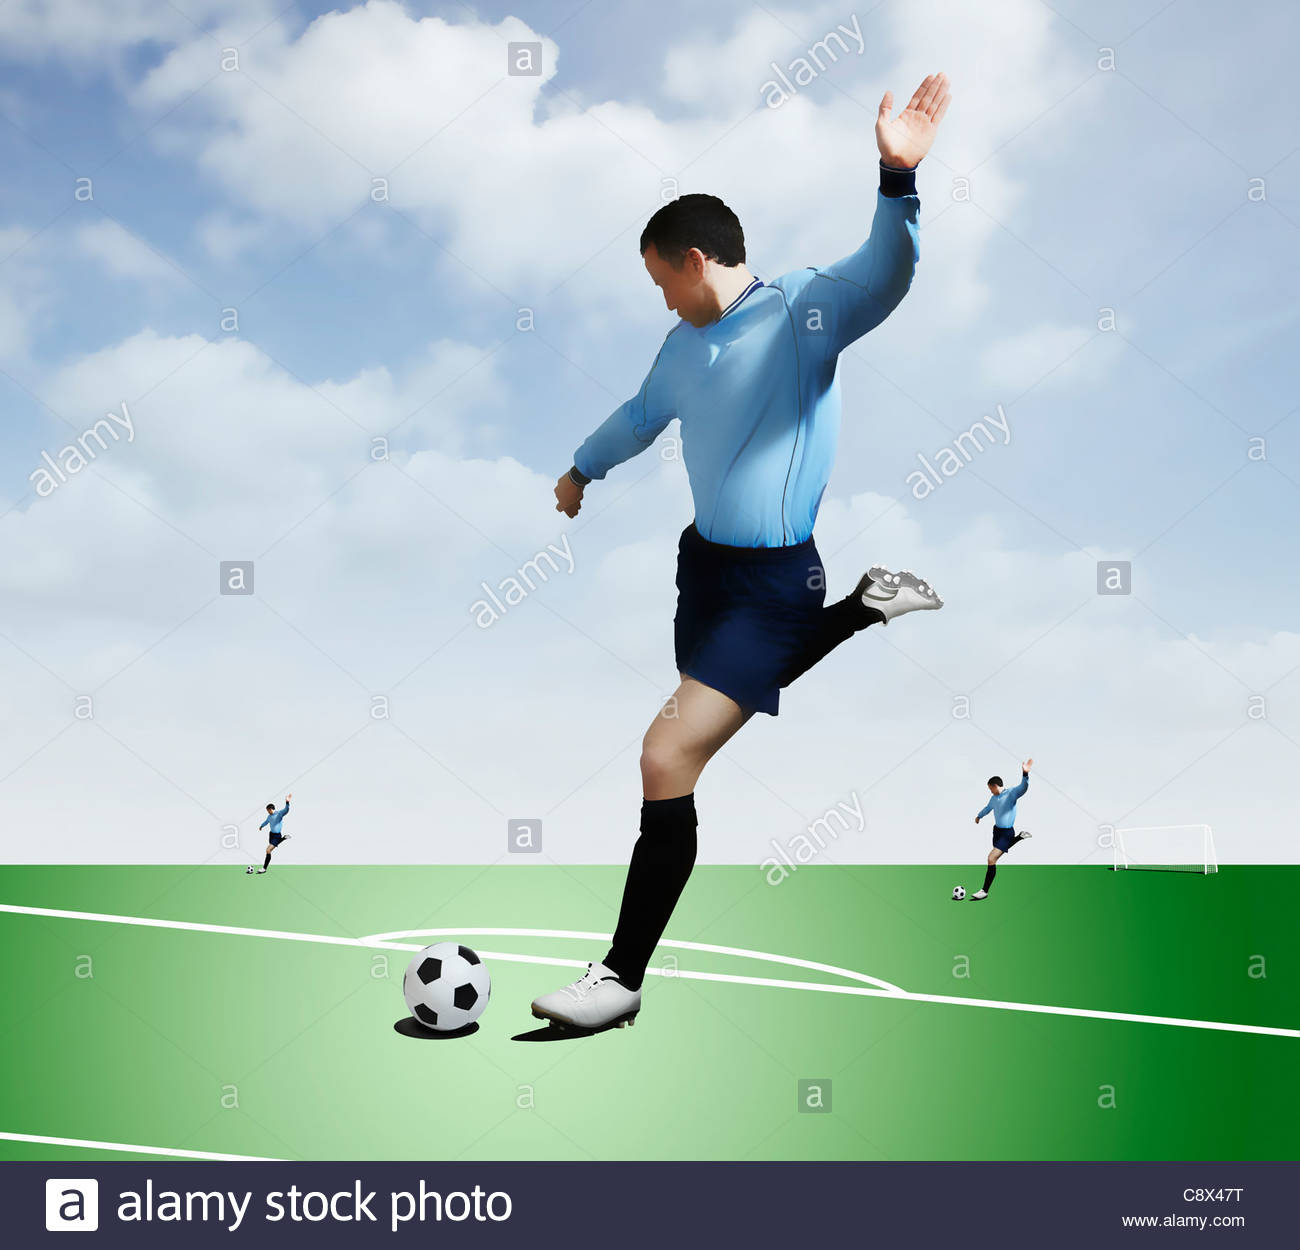 Man kicking soccer ball on pitch - Stock Image